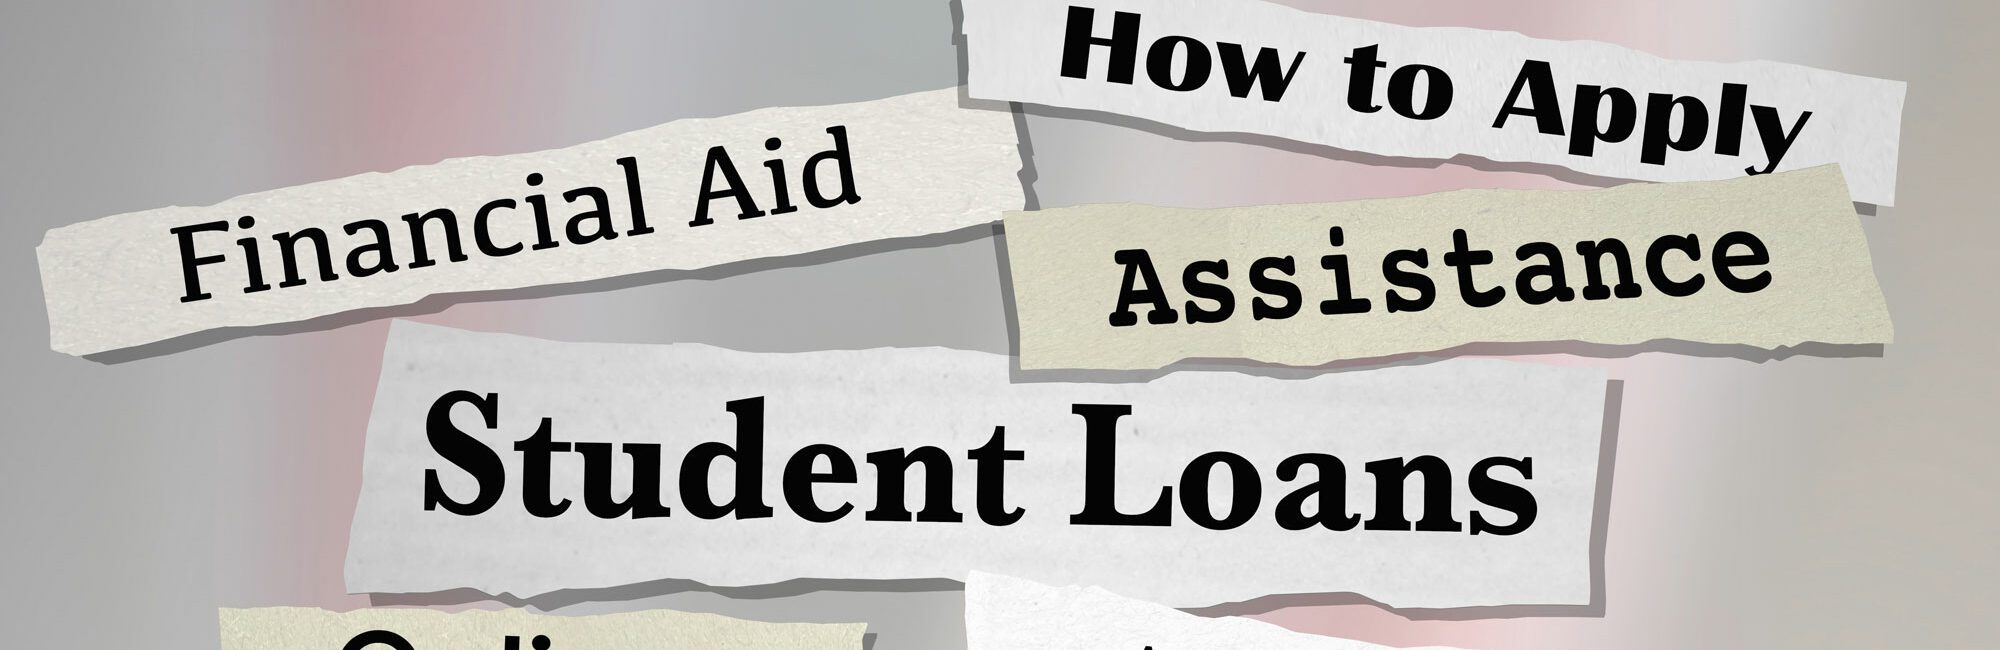 Beckfield College - Financial Aid FAQs - Florence, KY